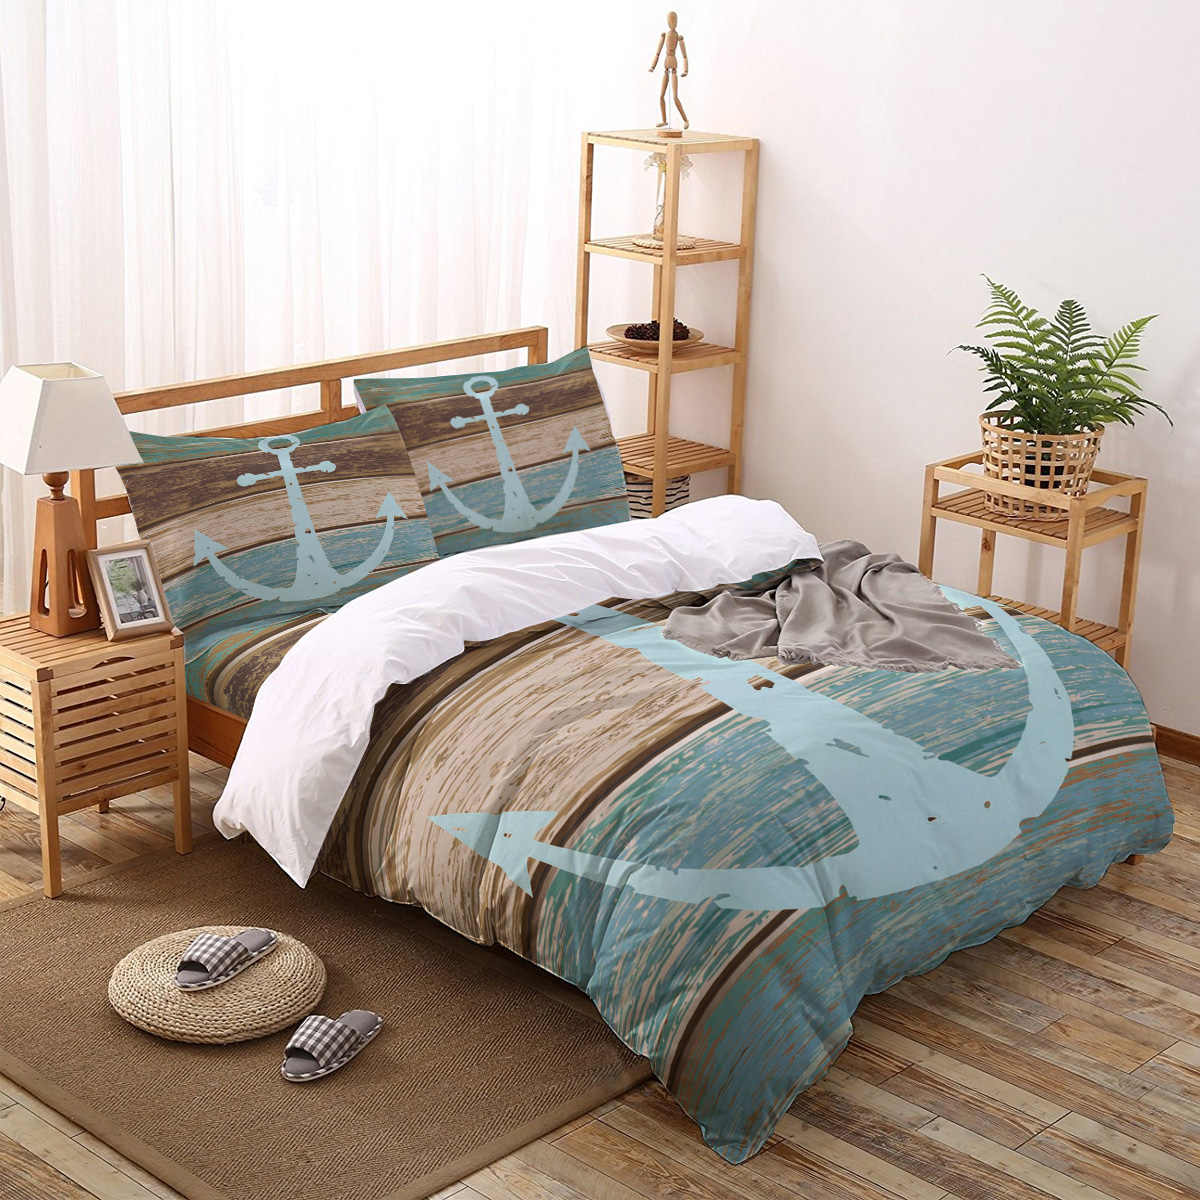 Vintage Anchor Wood Grain Polyester Fabric Comforter Sets Christmas Day Living Room Childrens Turquoise Bedroom Toddler Flower